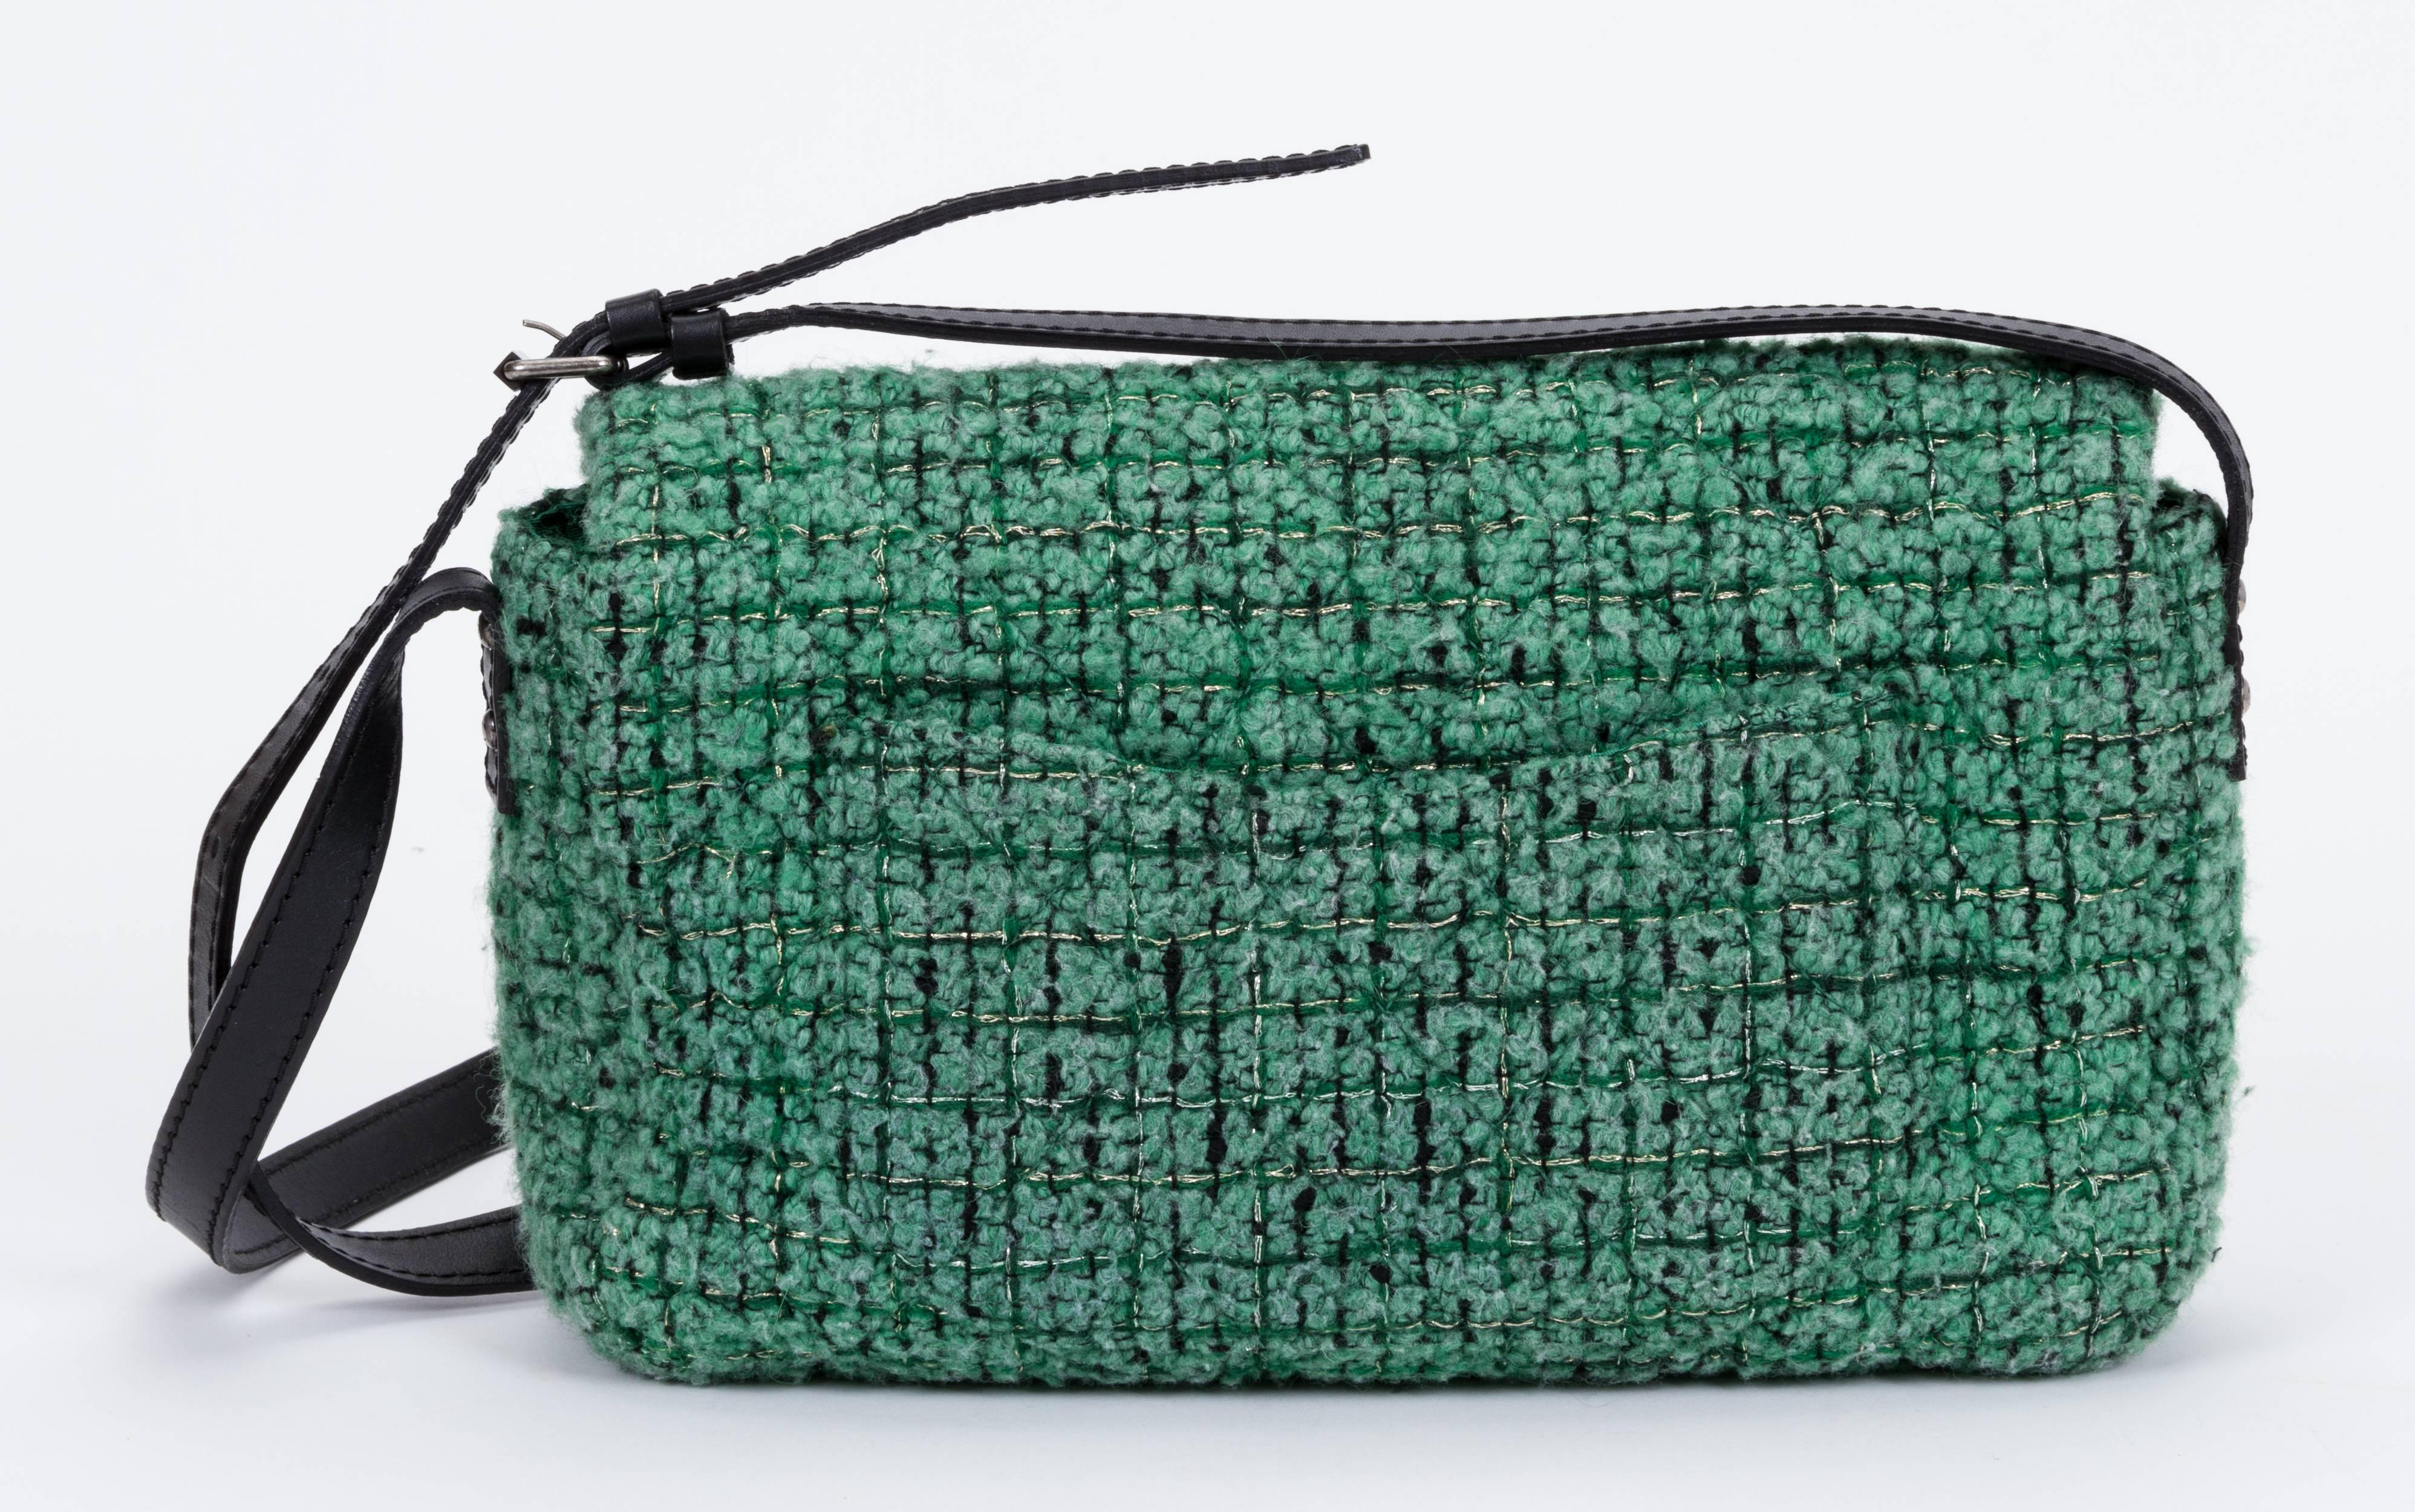 ef9a21640 Chanel Green Tweed Crossbody Flap Bag For Sale at 1stdibs